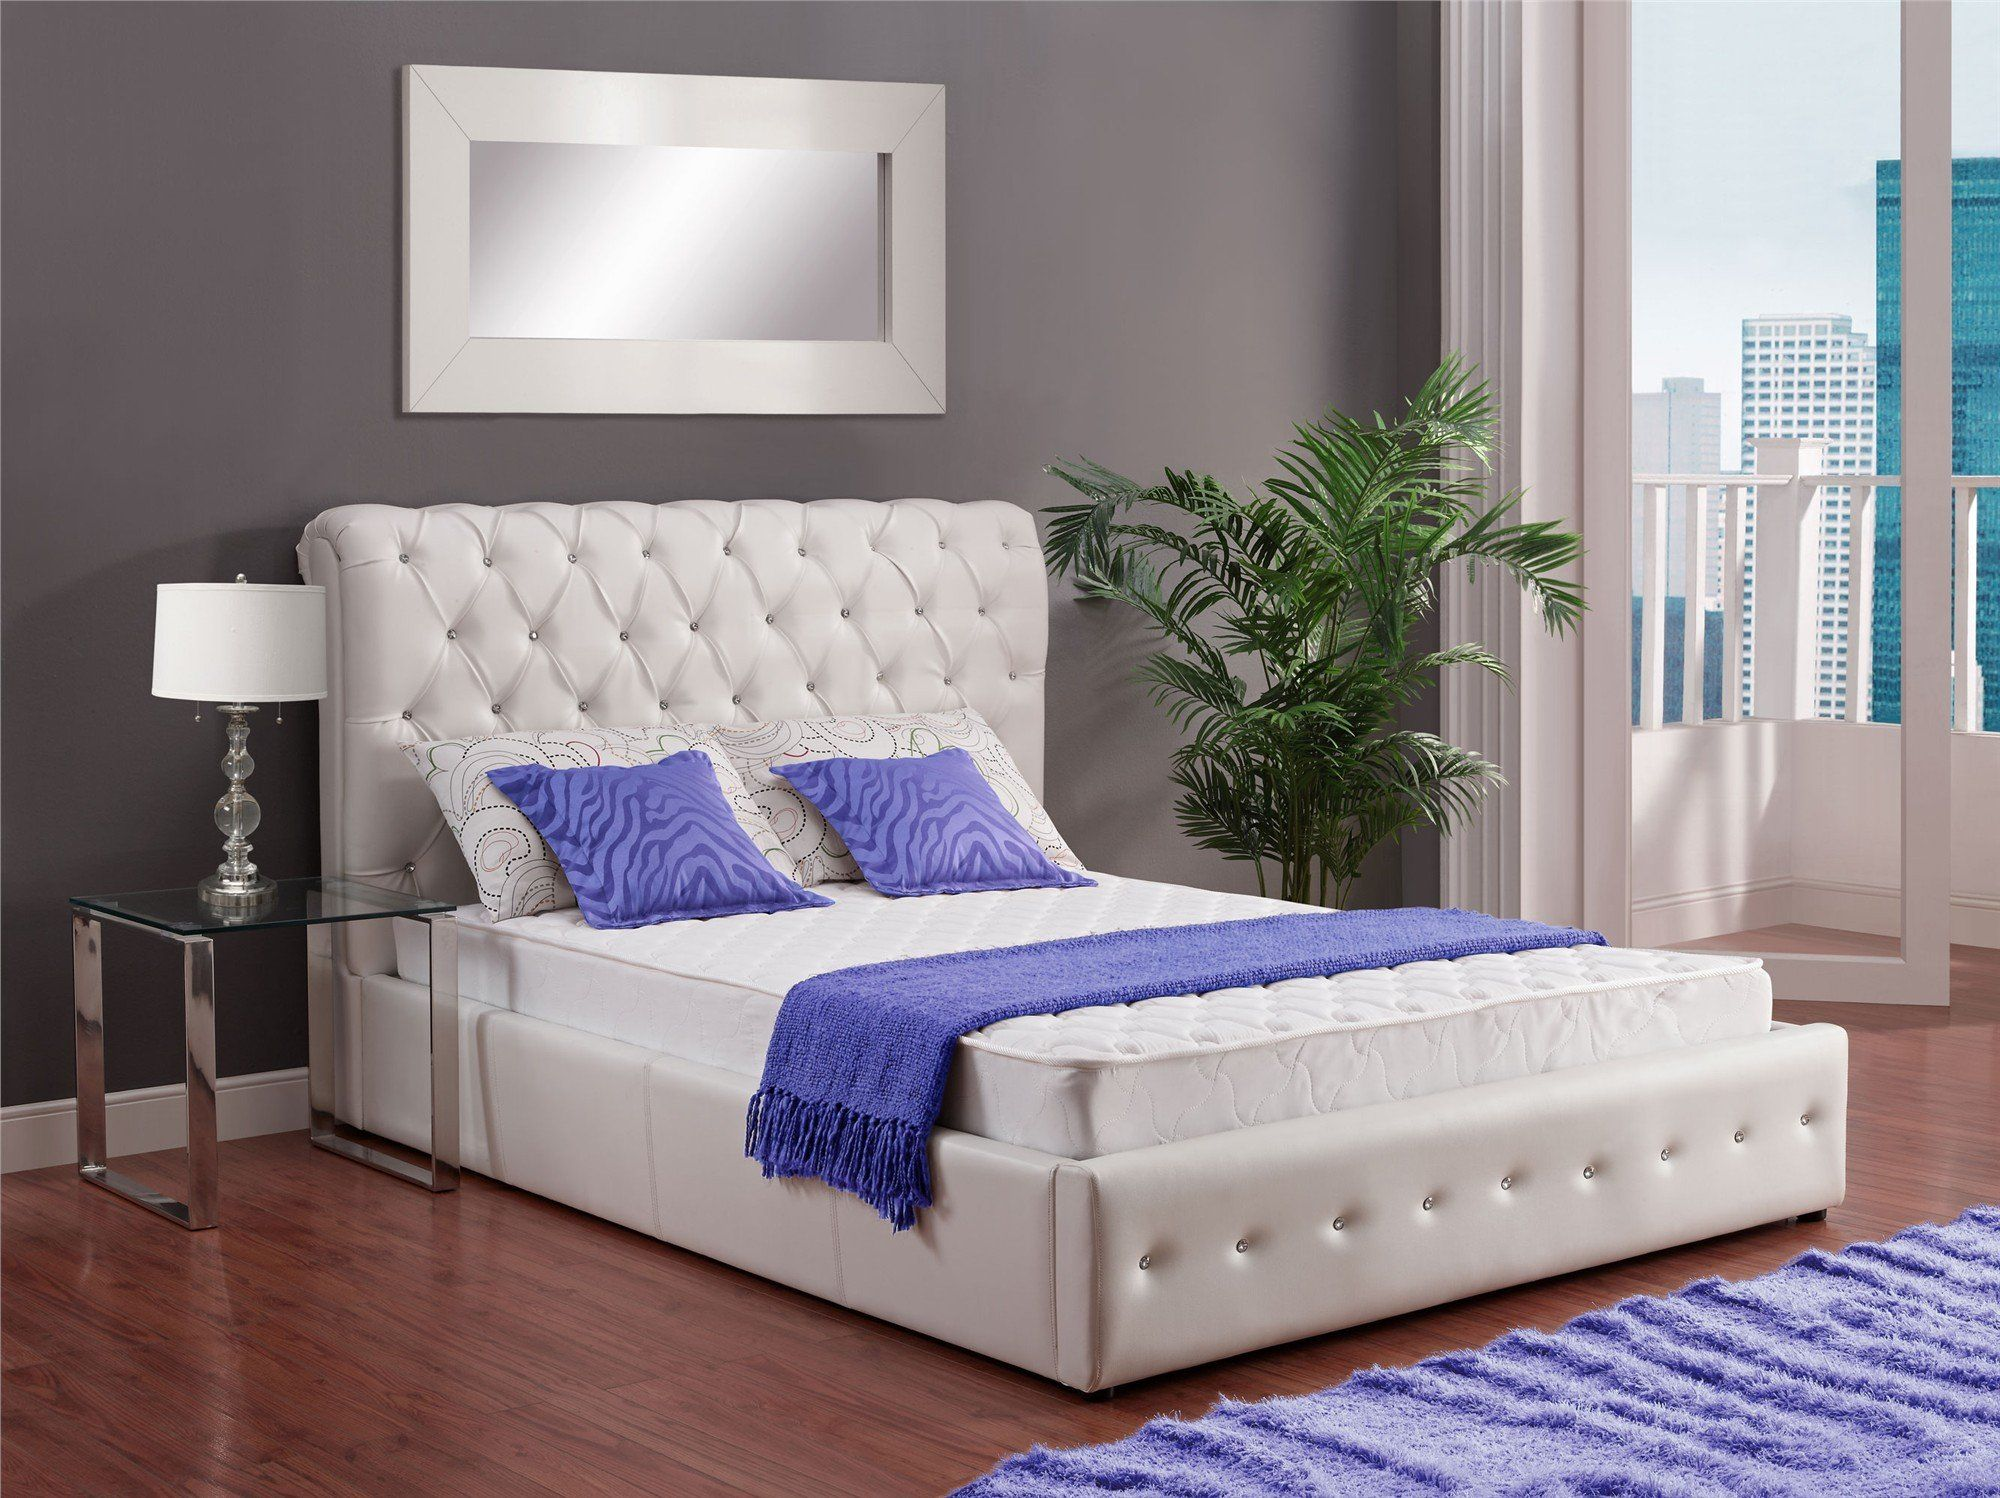 Signature Sleep Essential 6 Inch Coil Mattress made with